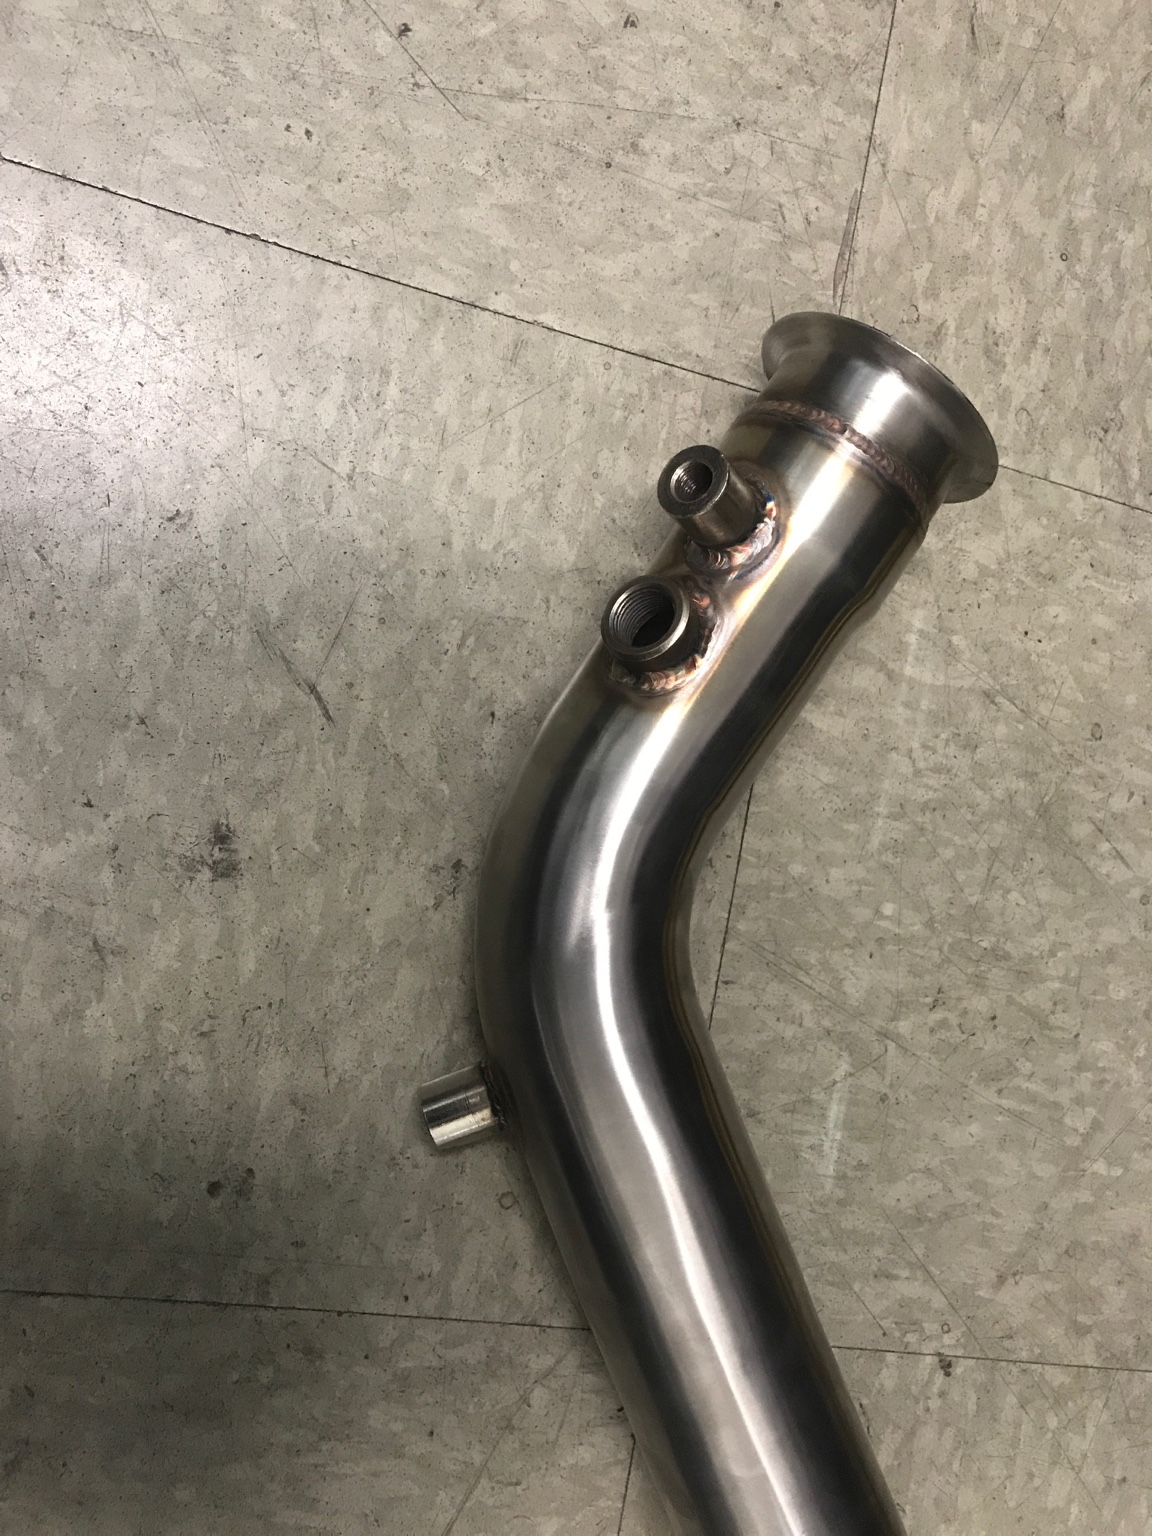 Mission tuning flash and downpipe f30 328d - Bimmerfest - BMW Forums